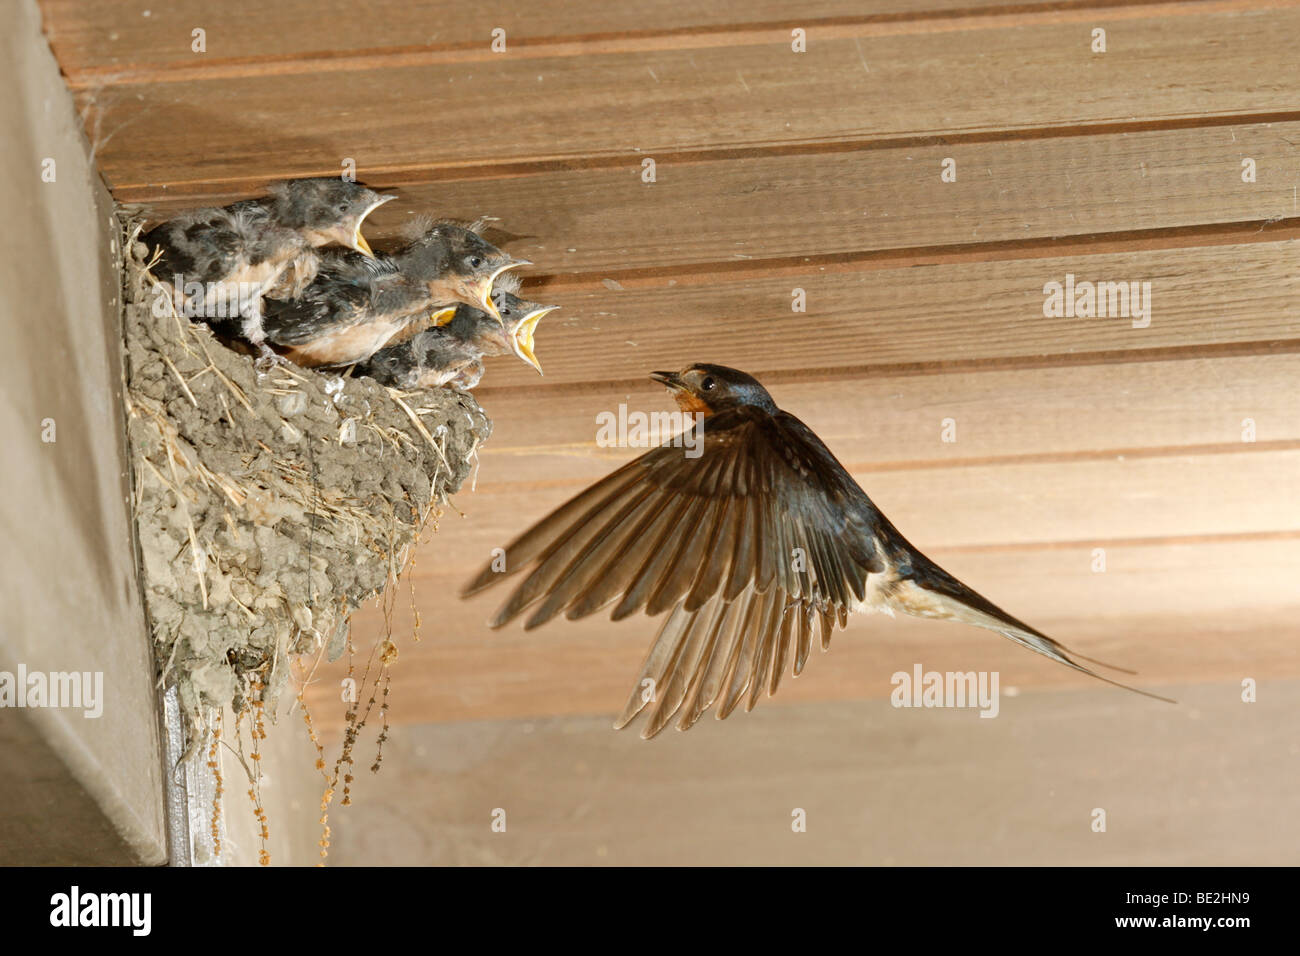 Barn Swallow at Nest - Stock Image